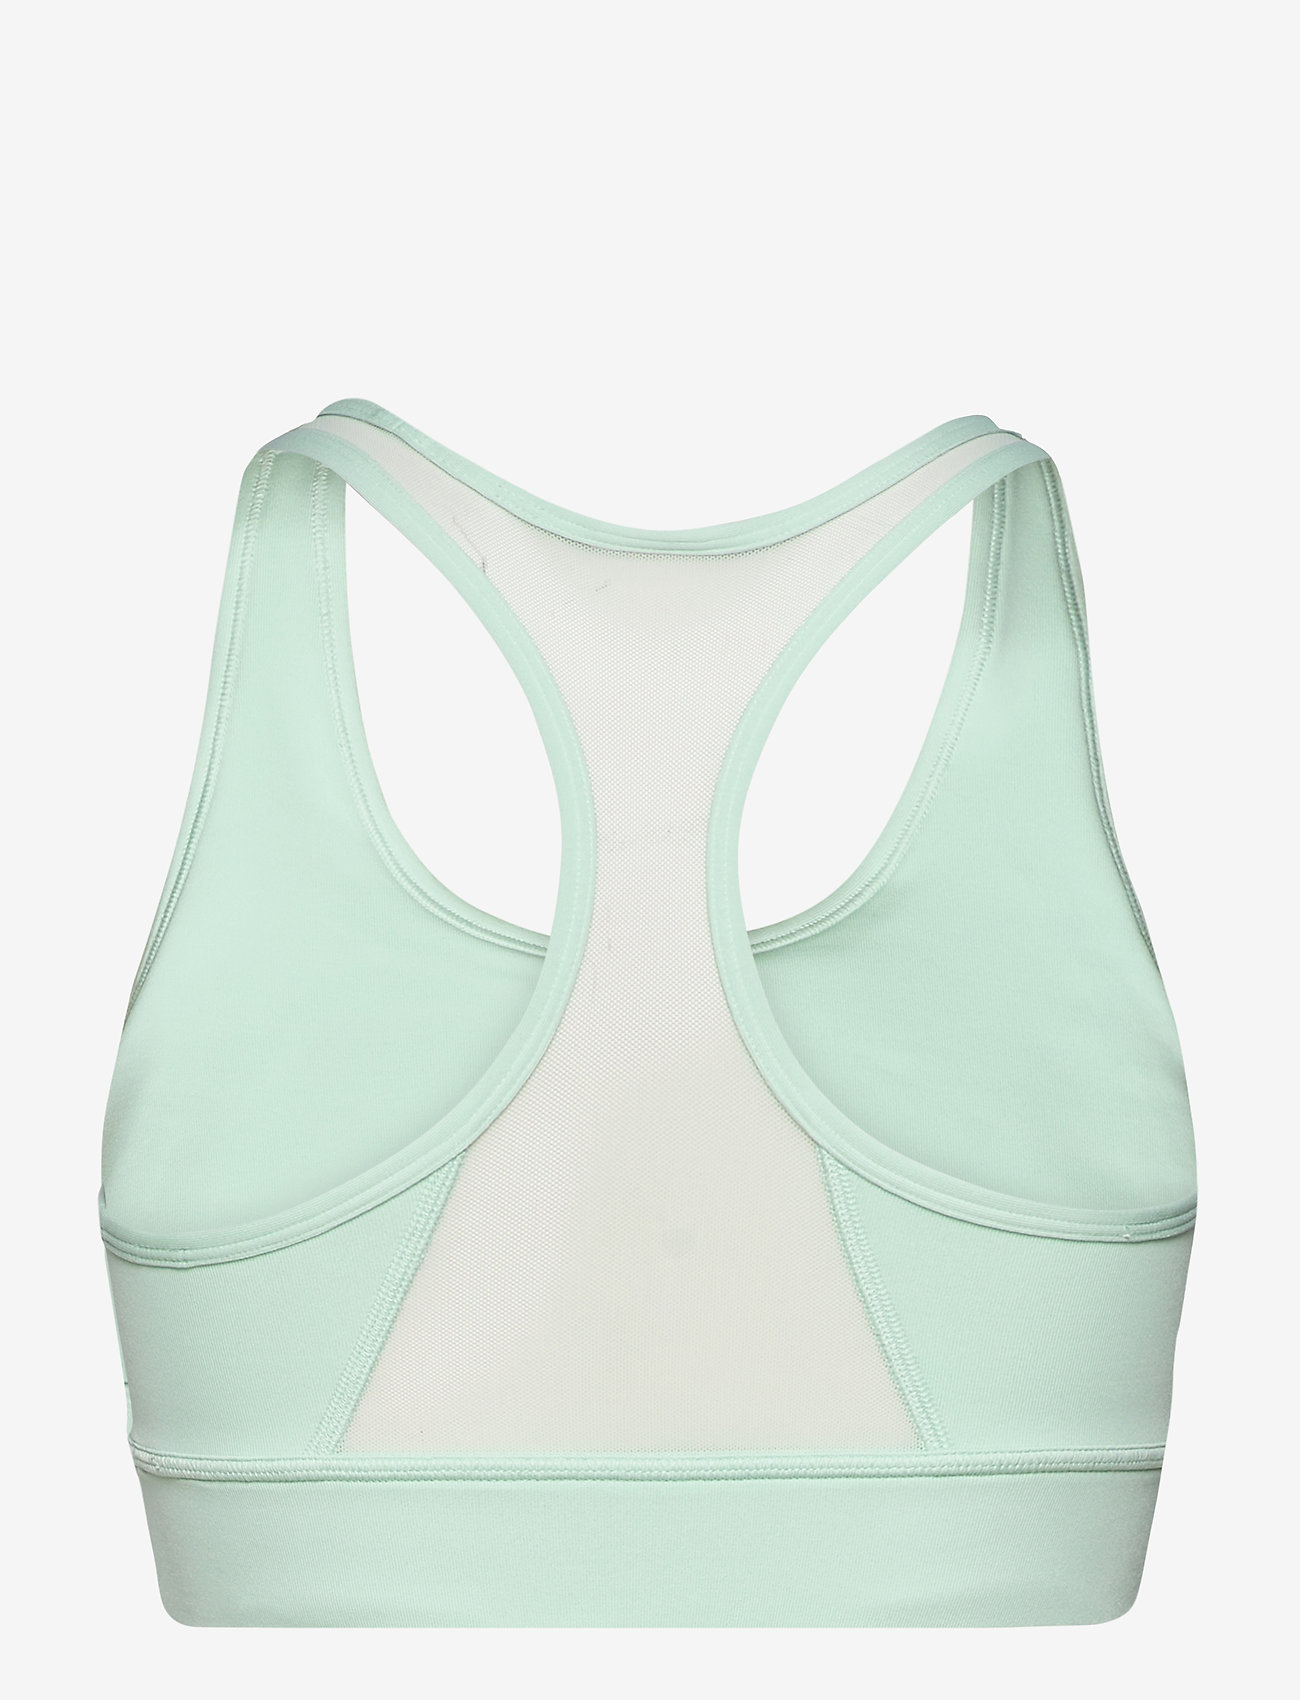 The North Face - W BOUNCE BE GONE BRA - sort bras:high - misty jade - 1